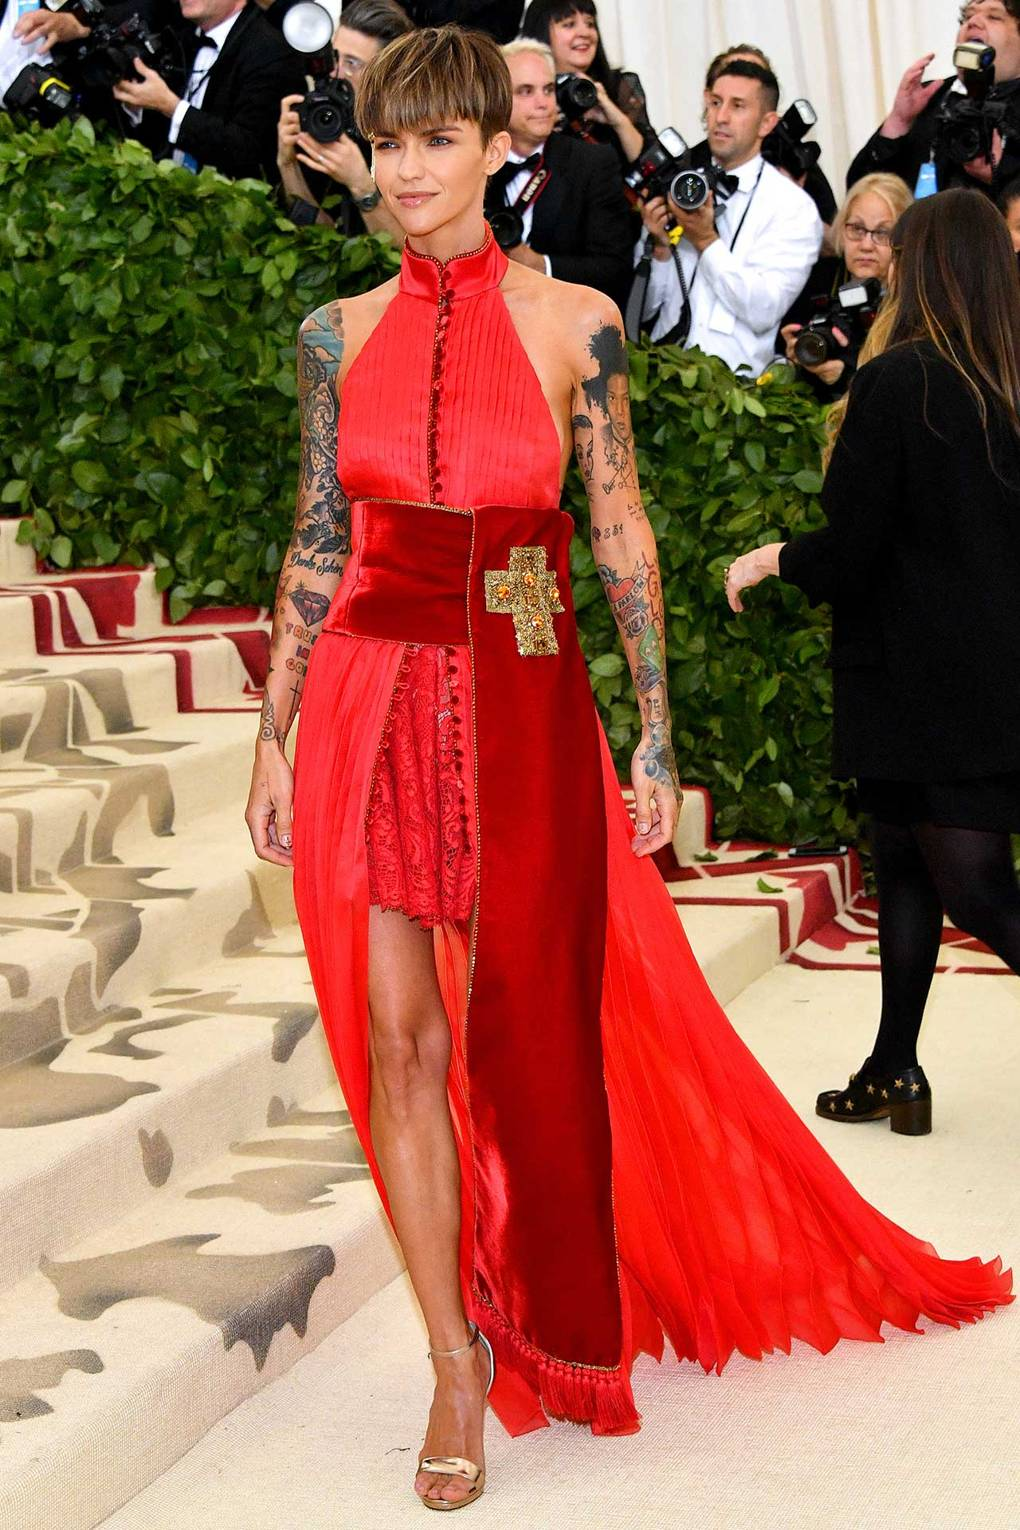 Ruby Rose | Image via Vogue UK